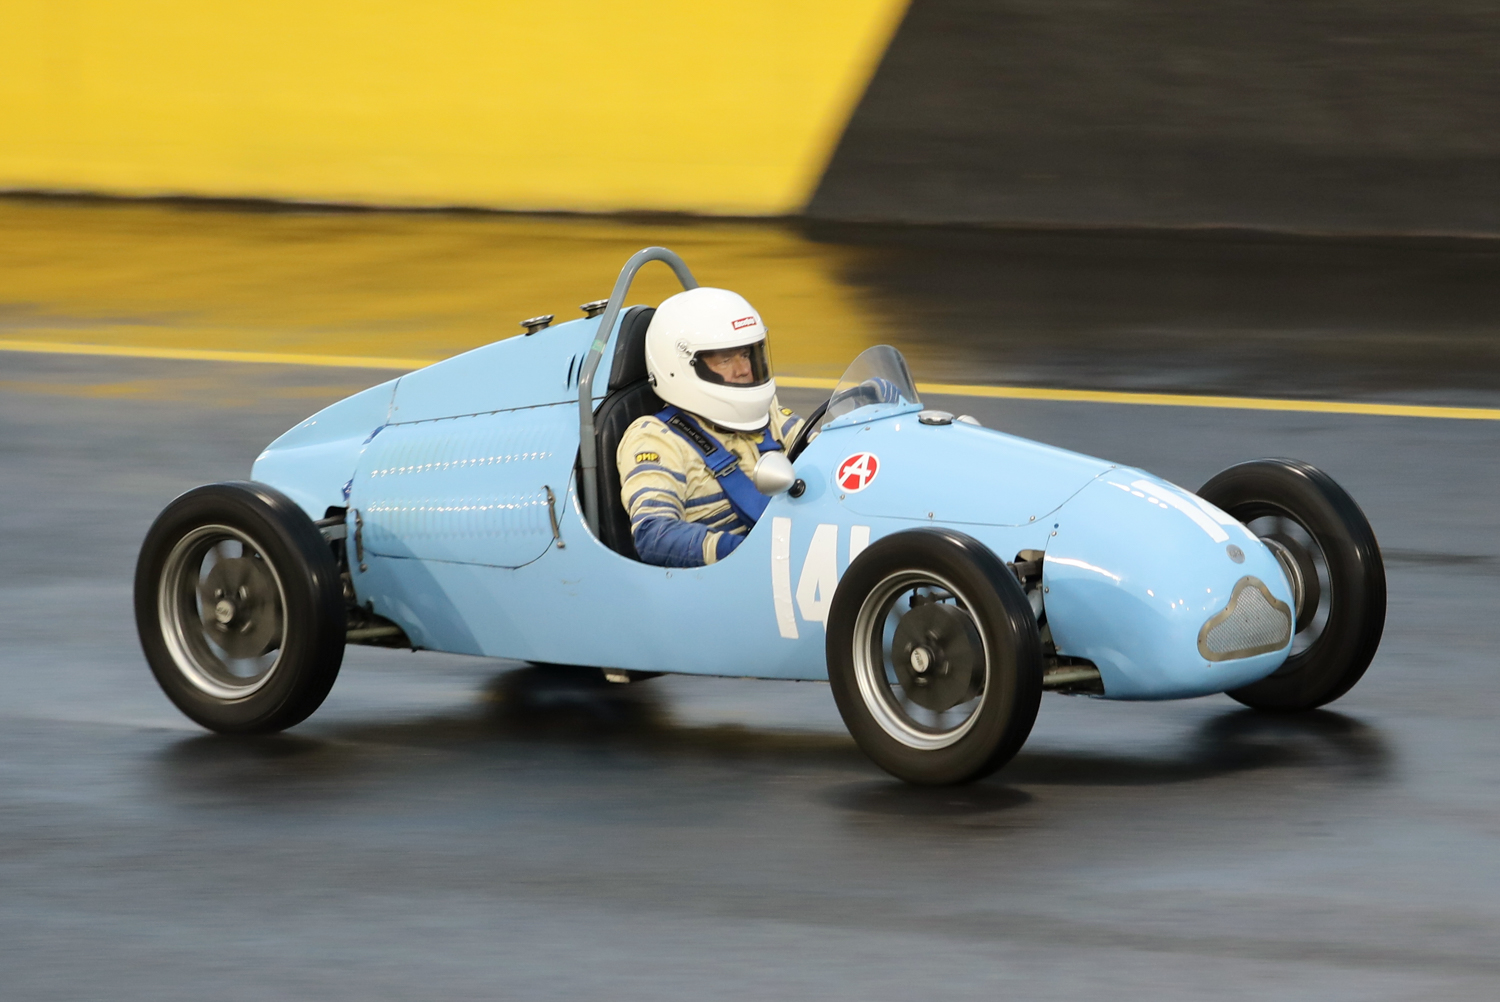 Garry Simkin in his 1950 Cooper Vincent. Steve Oom Photo. STEVE OOM PHOTOGRAPHY